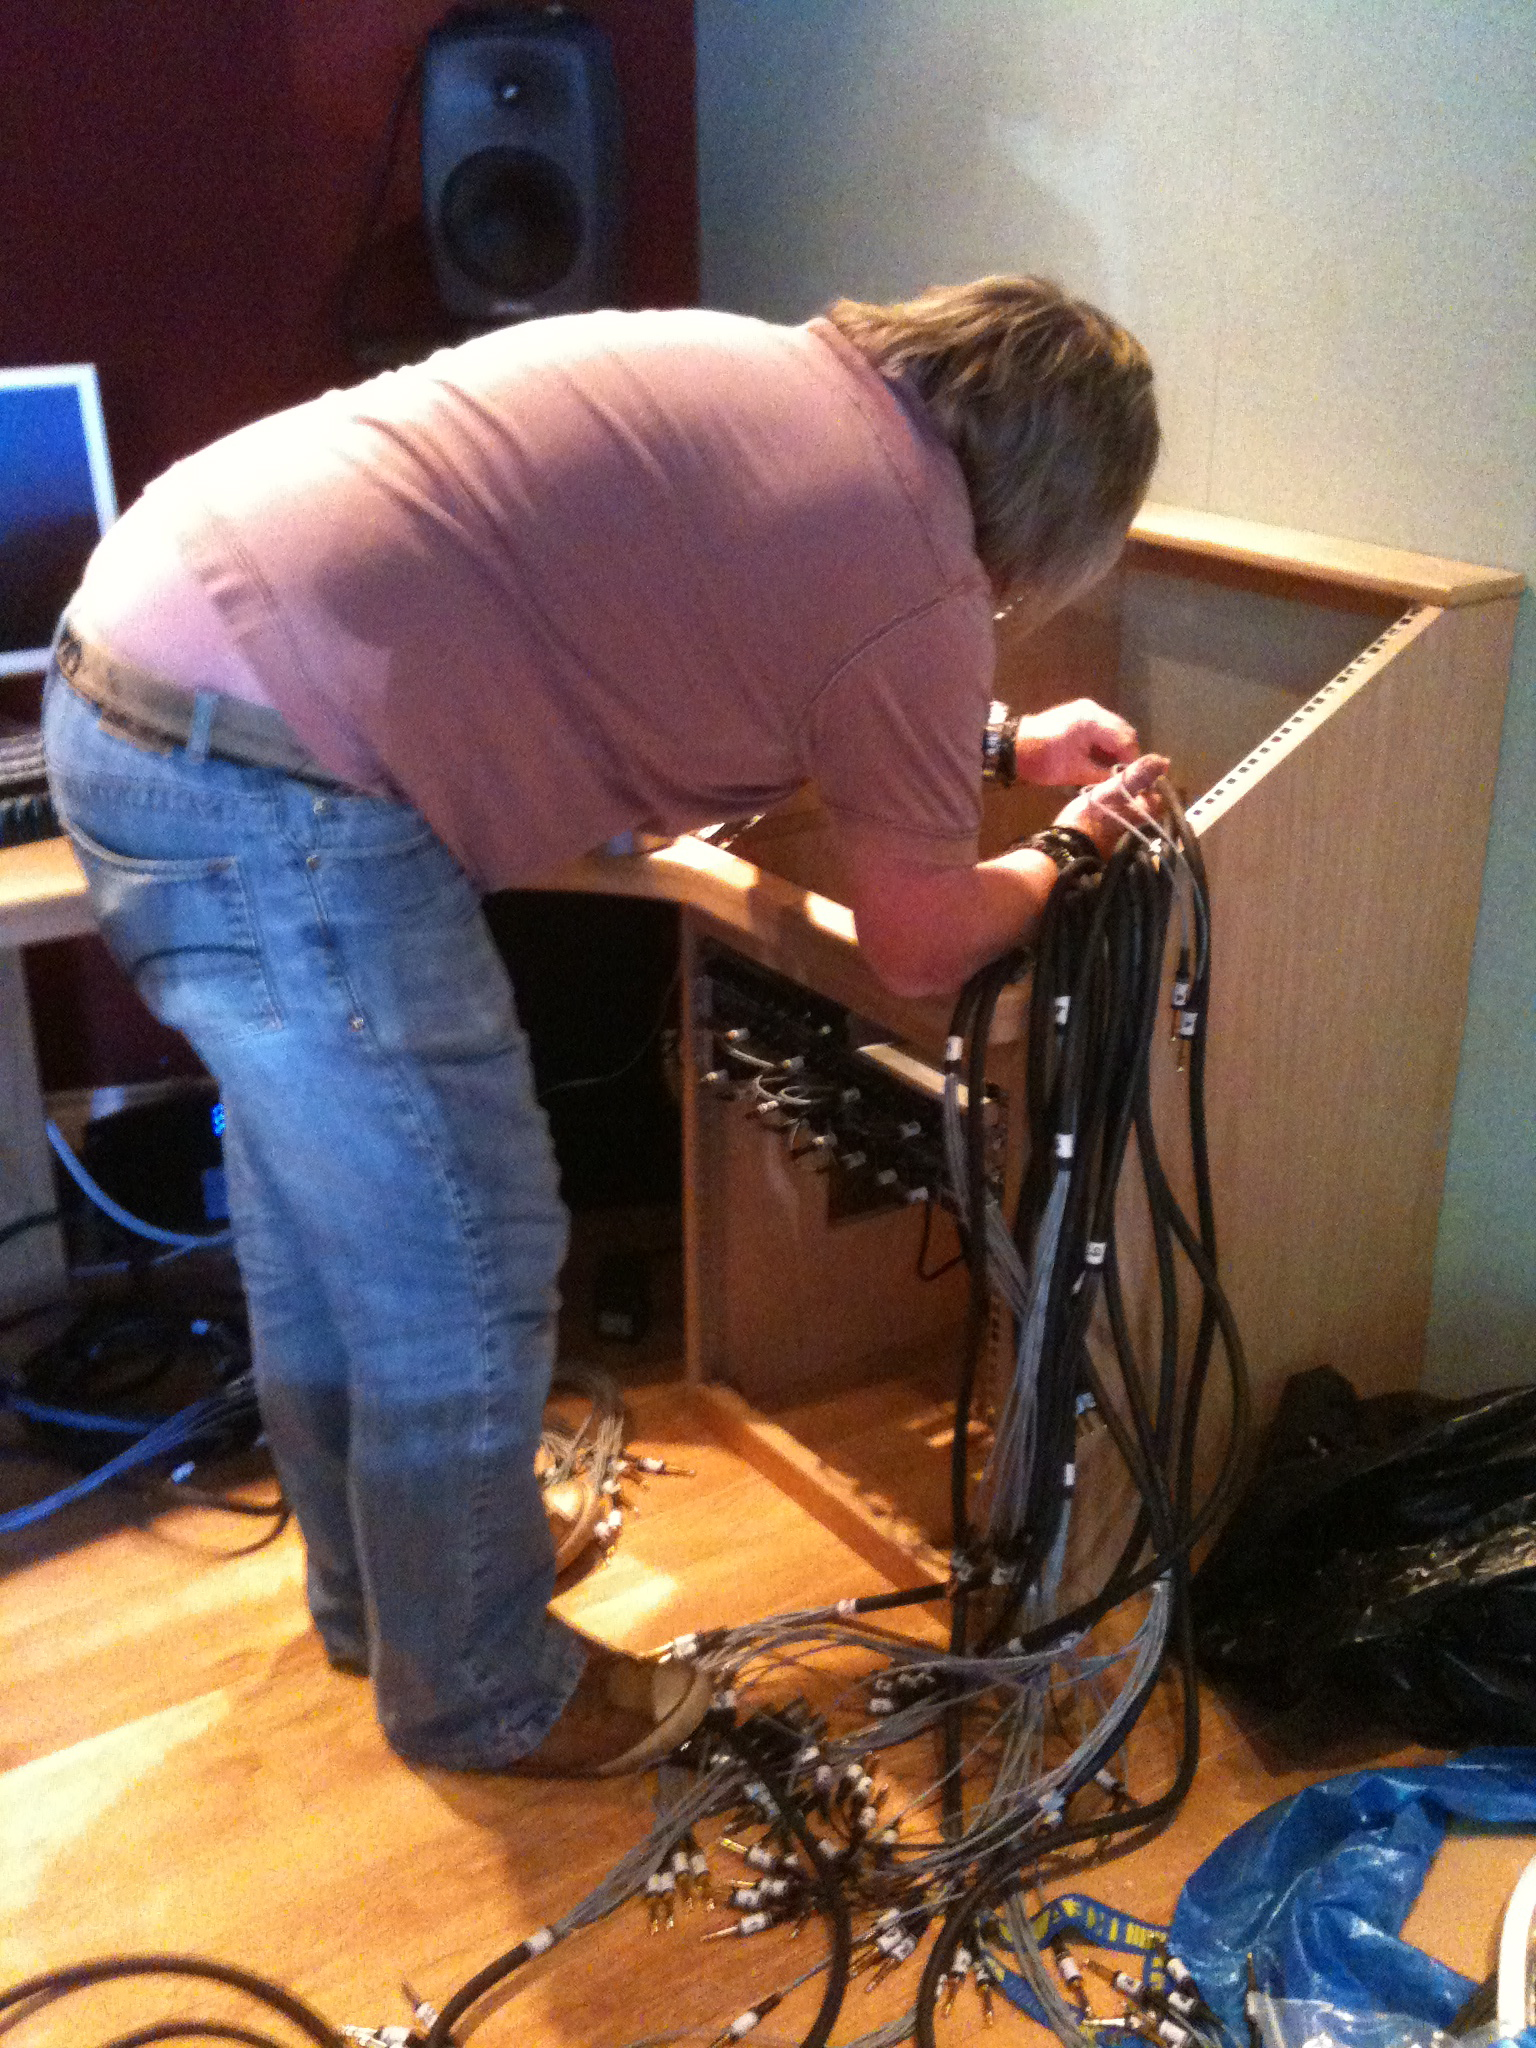 The looms go into the top patchbay.